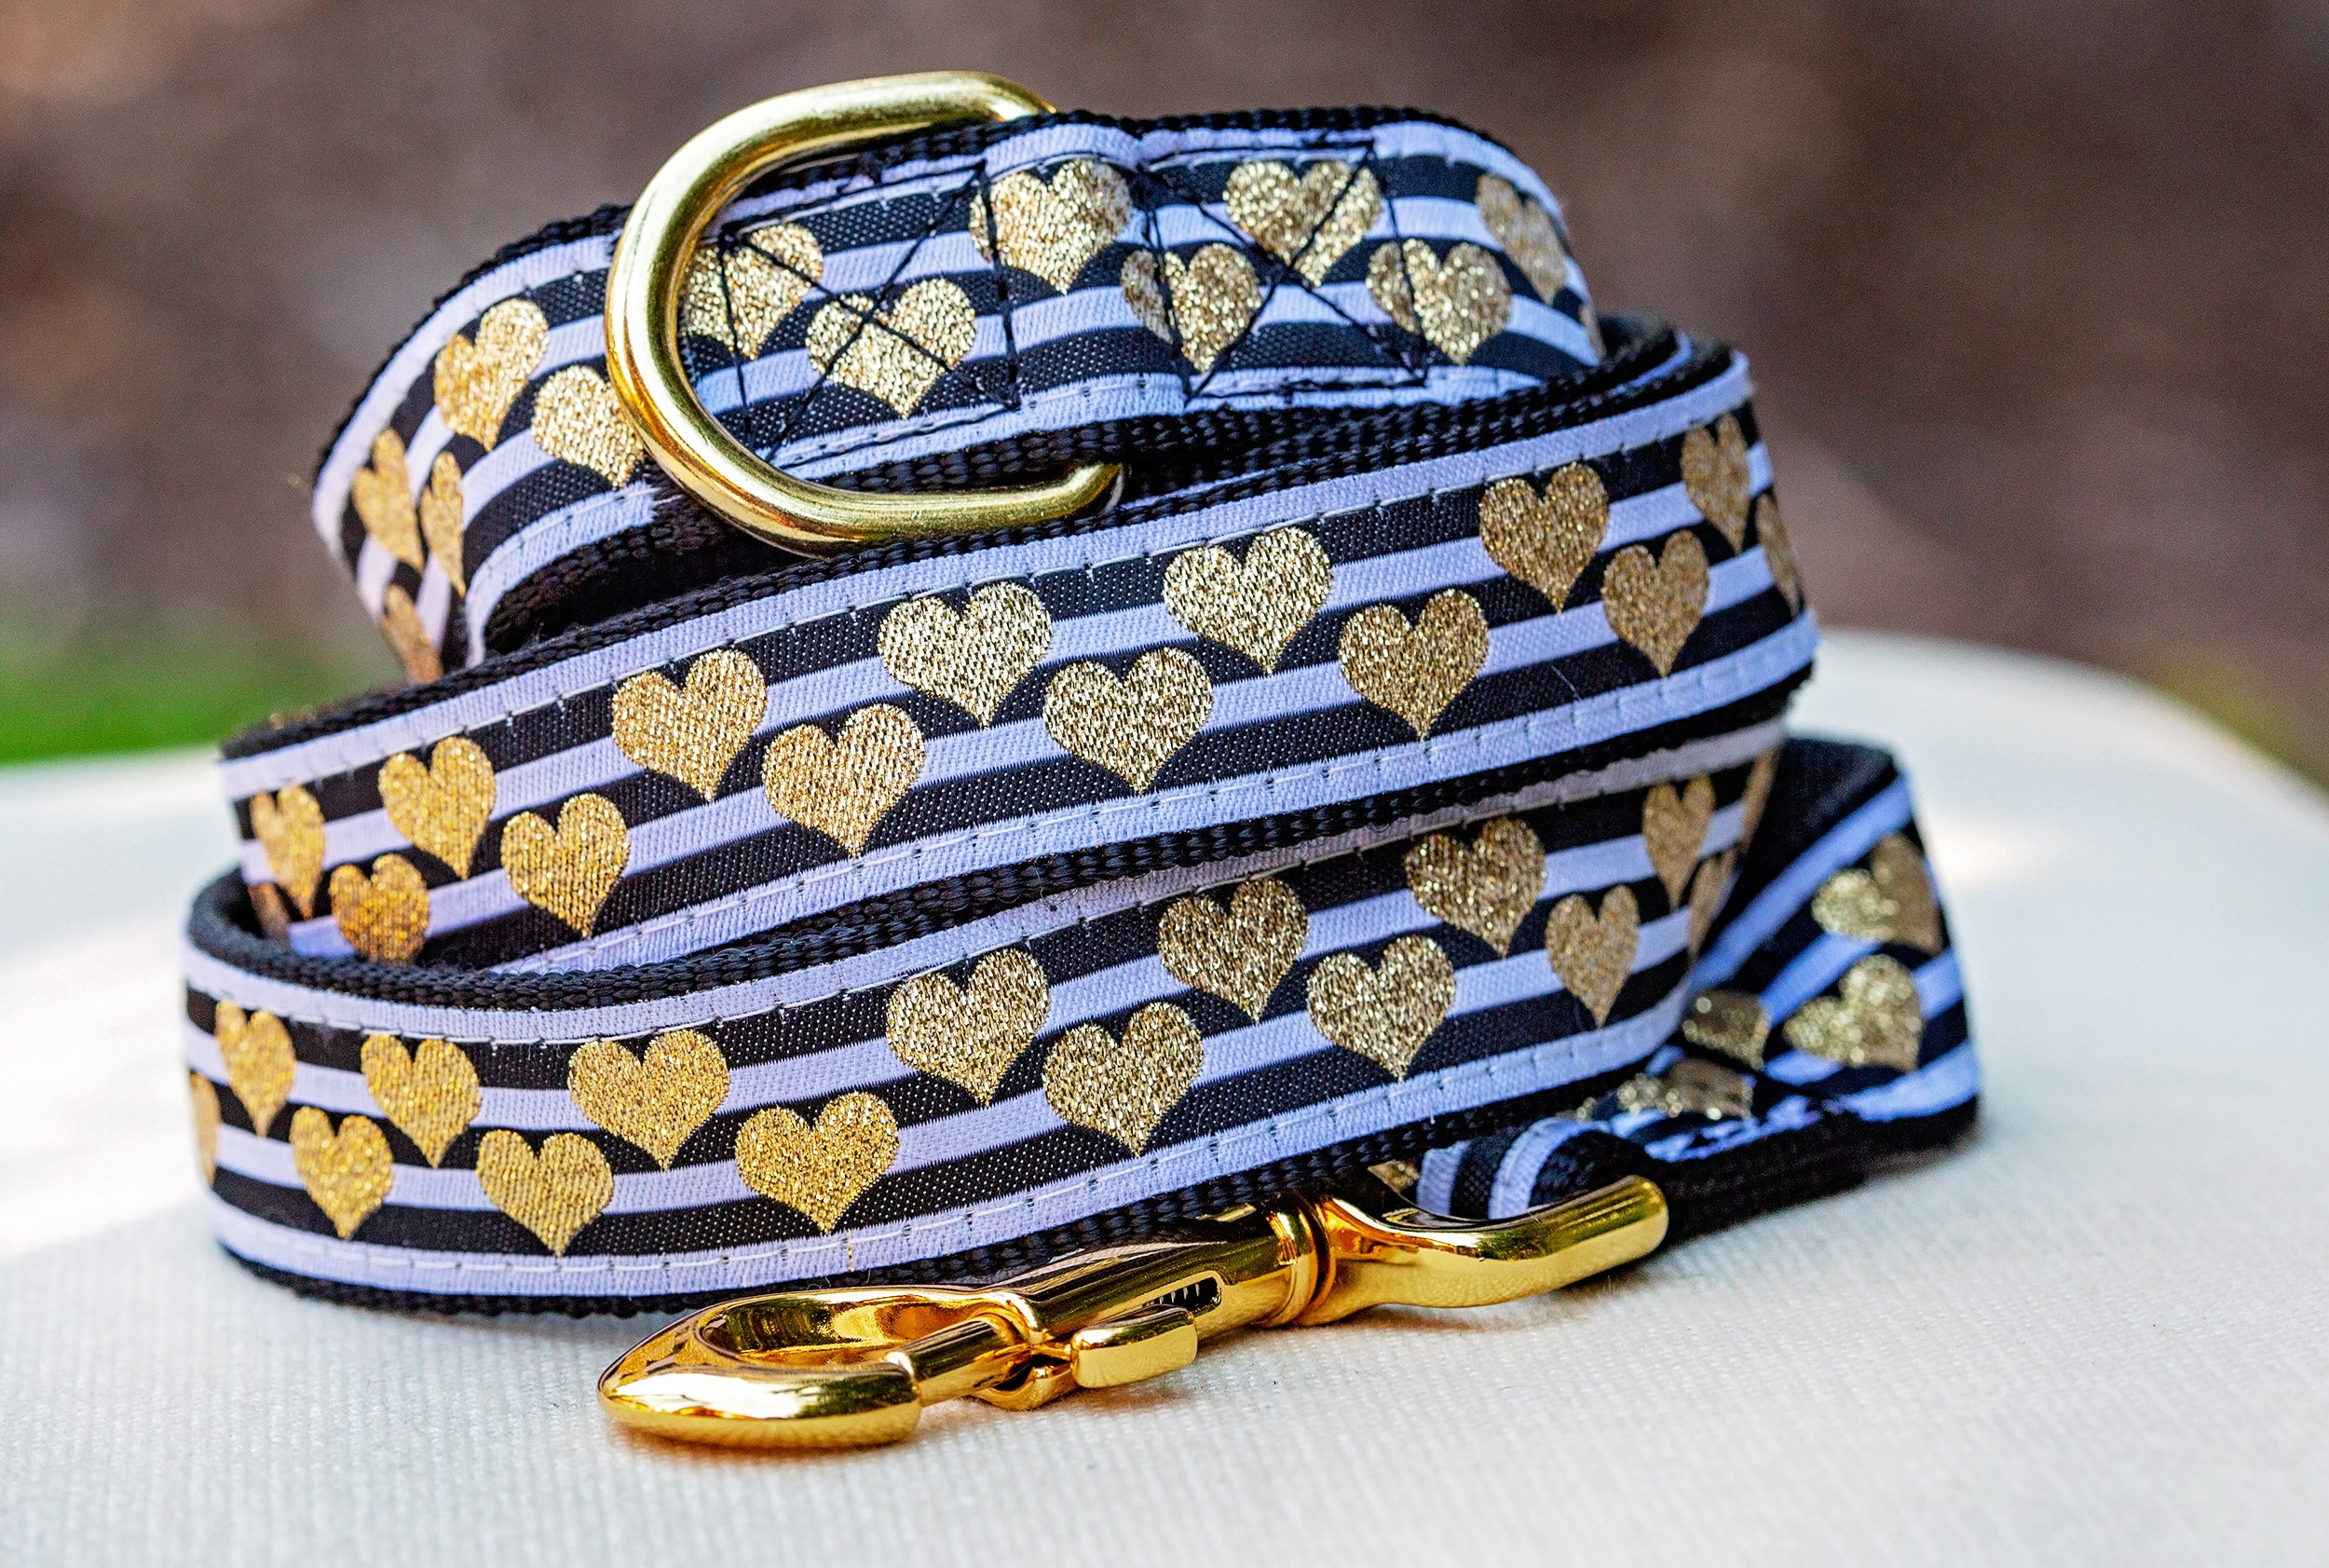 Gold Hearts Dog Leash / Ready to Ship / Nylon Dog Lead-Dizzy Dog Collars